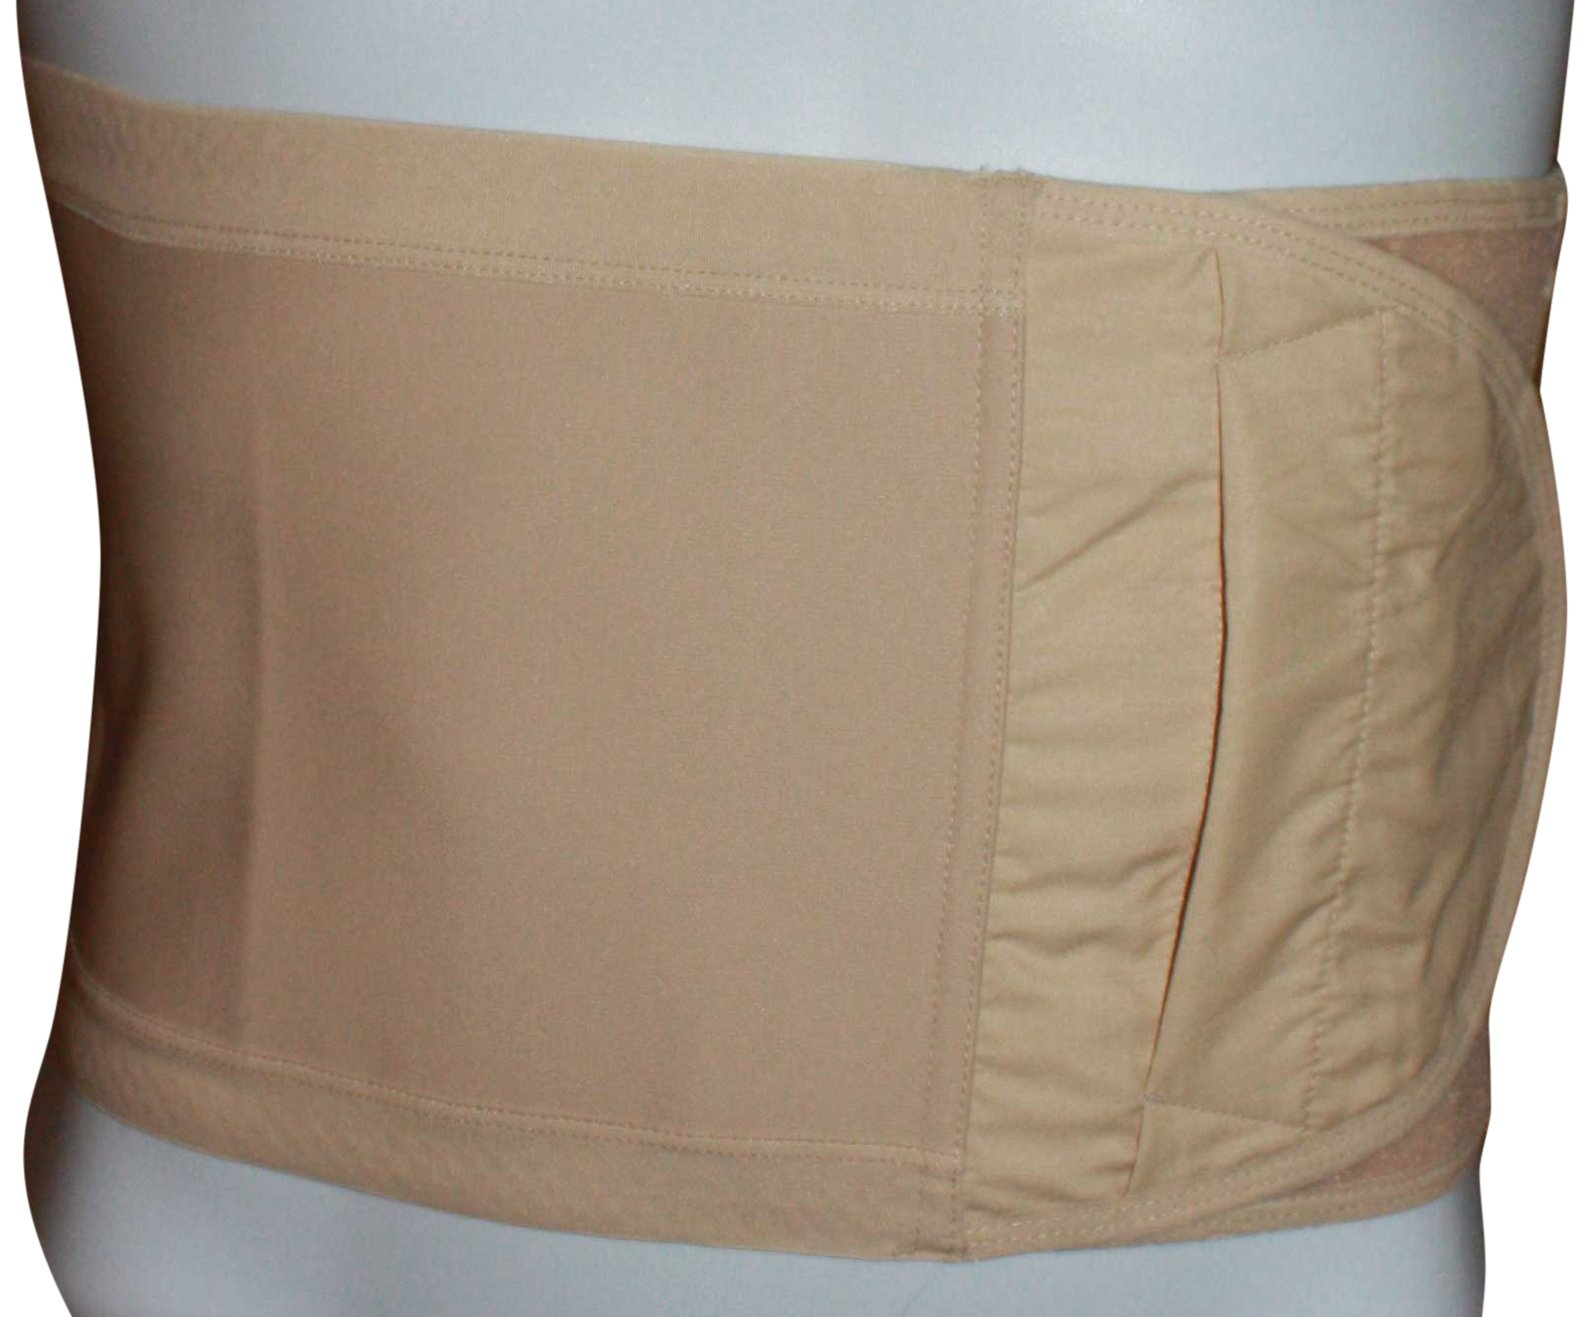 Safe n' Simple Hernia Support Belt, 20cm, Beige, Small